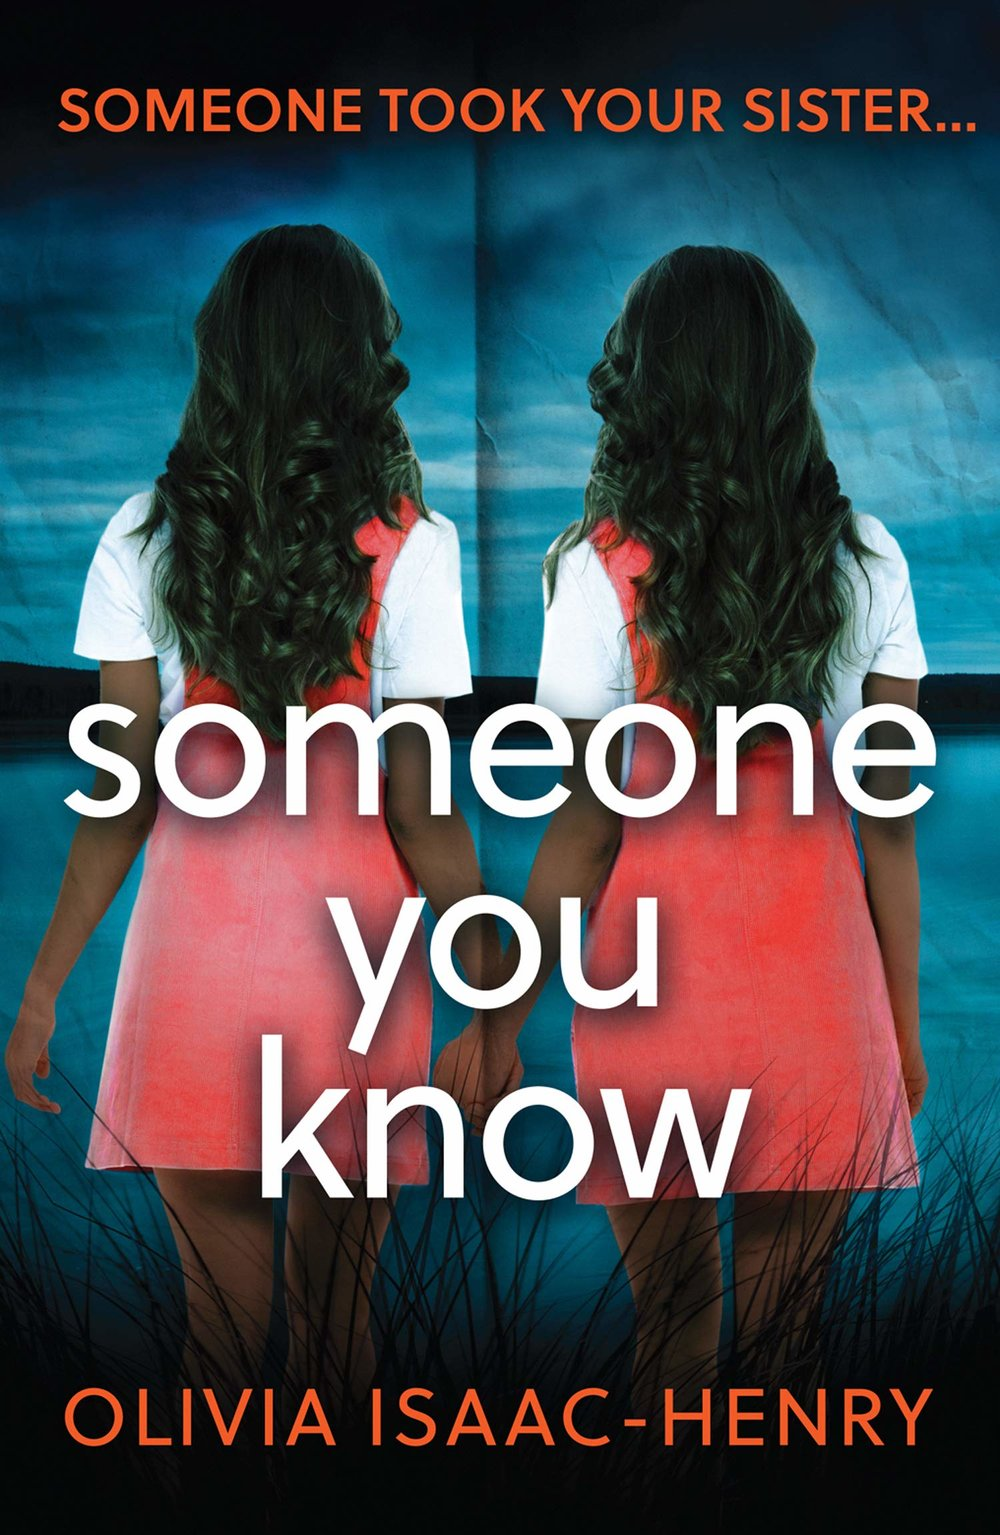 SOMEONE YOU  KNOW Thriller, Avon, 300 pages, 2019  Tess Piper was fourteen when her adored twin sister Edie disappeared.  She has spent the last twenty years building a life away from her fractured family, desperate to escape the shadow of the past.  Only now she needs to confront the huge hole her sister's disappearance left in her life, because a body has been found. The police are shining a spotlight on the Piper family. And secrets are about to surface.  After all, it's common knowledge that more often than not, these crimes are committed by someone close to the victim. Someone they trust. Someone they know…